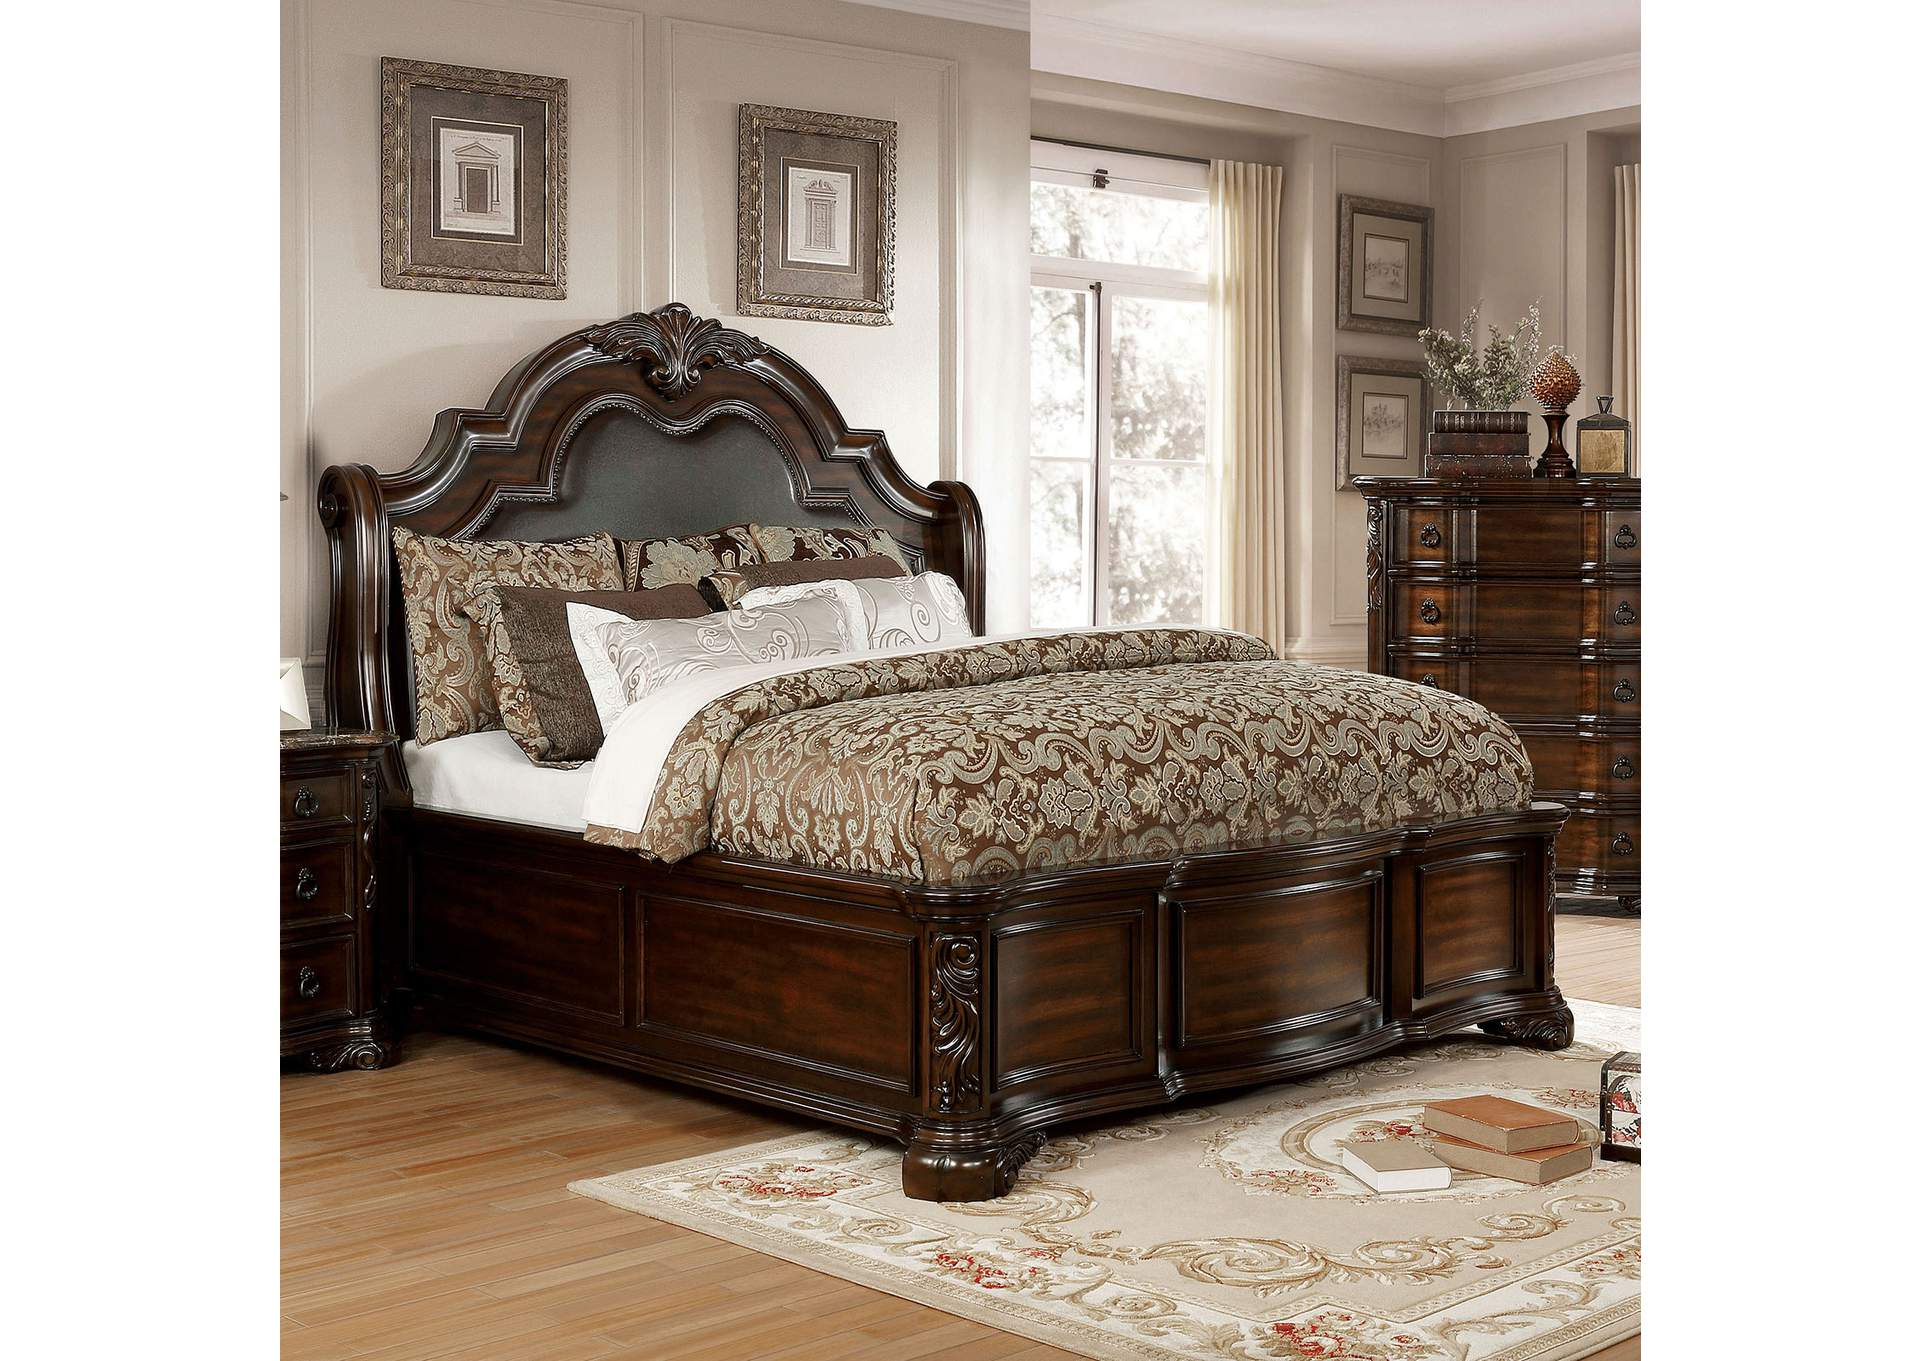 Niketas Brown Cherry Eastern King Bed,Furniture of America